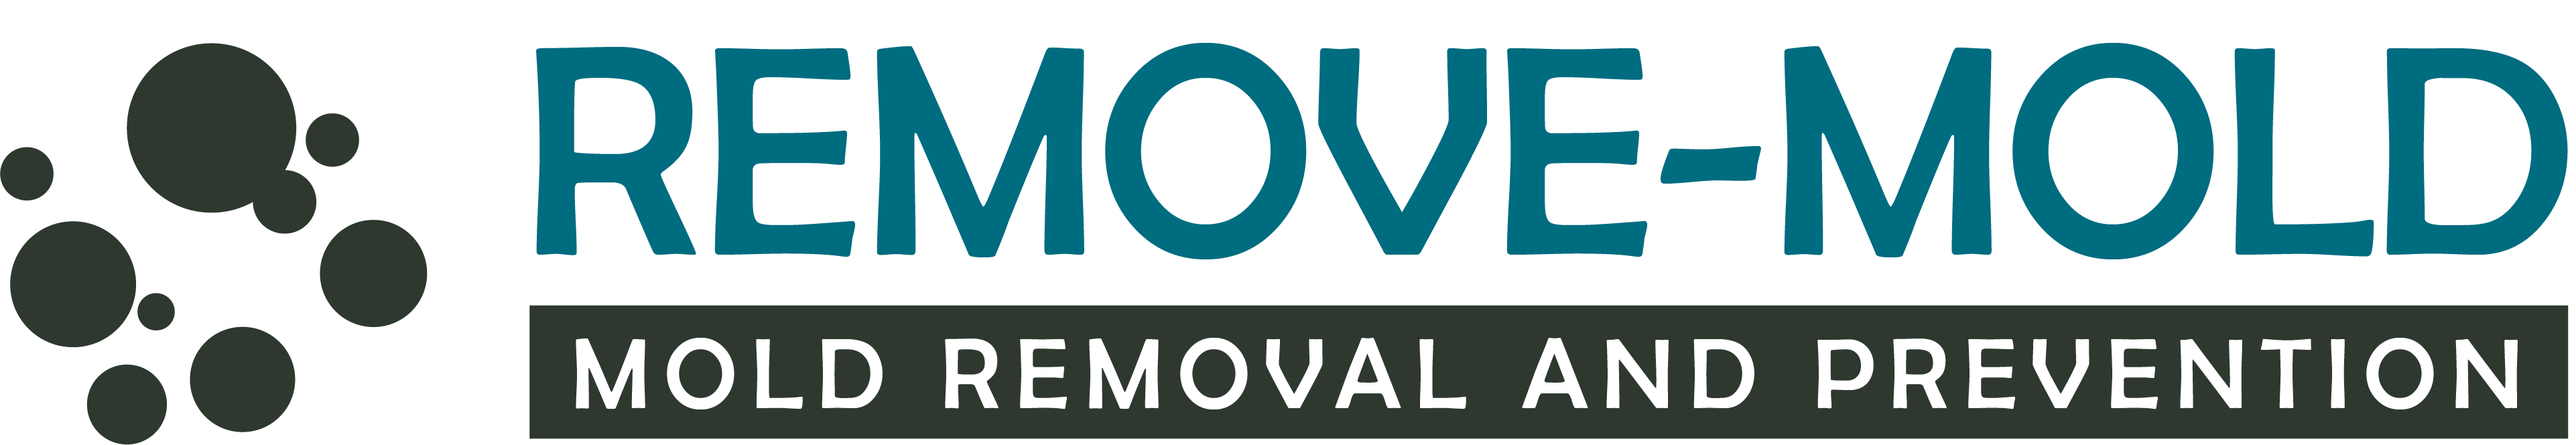 Mold Removal Logo